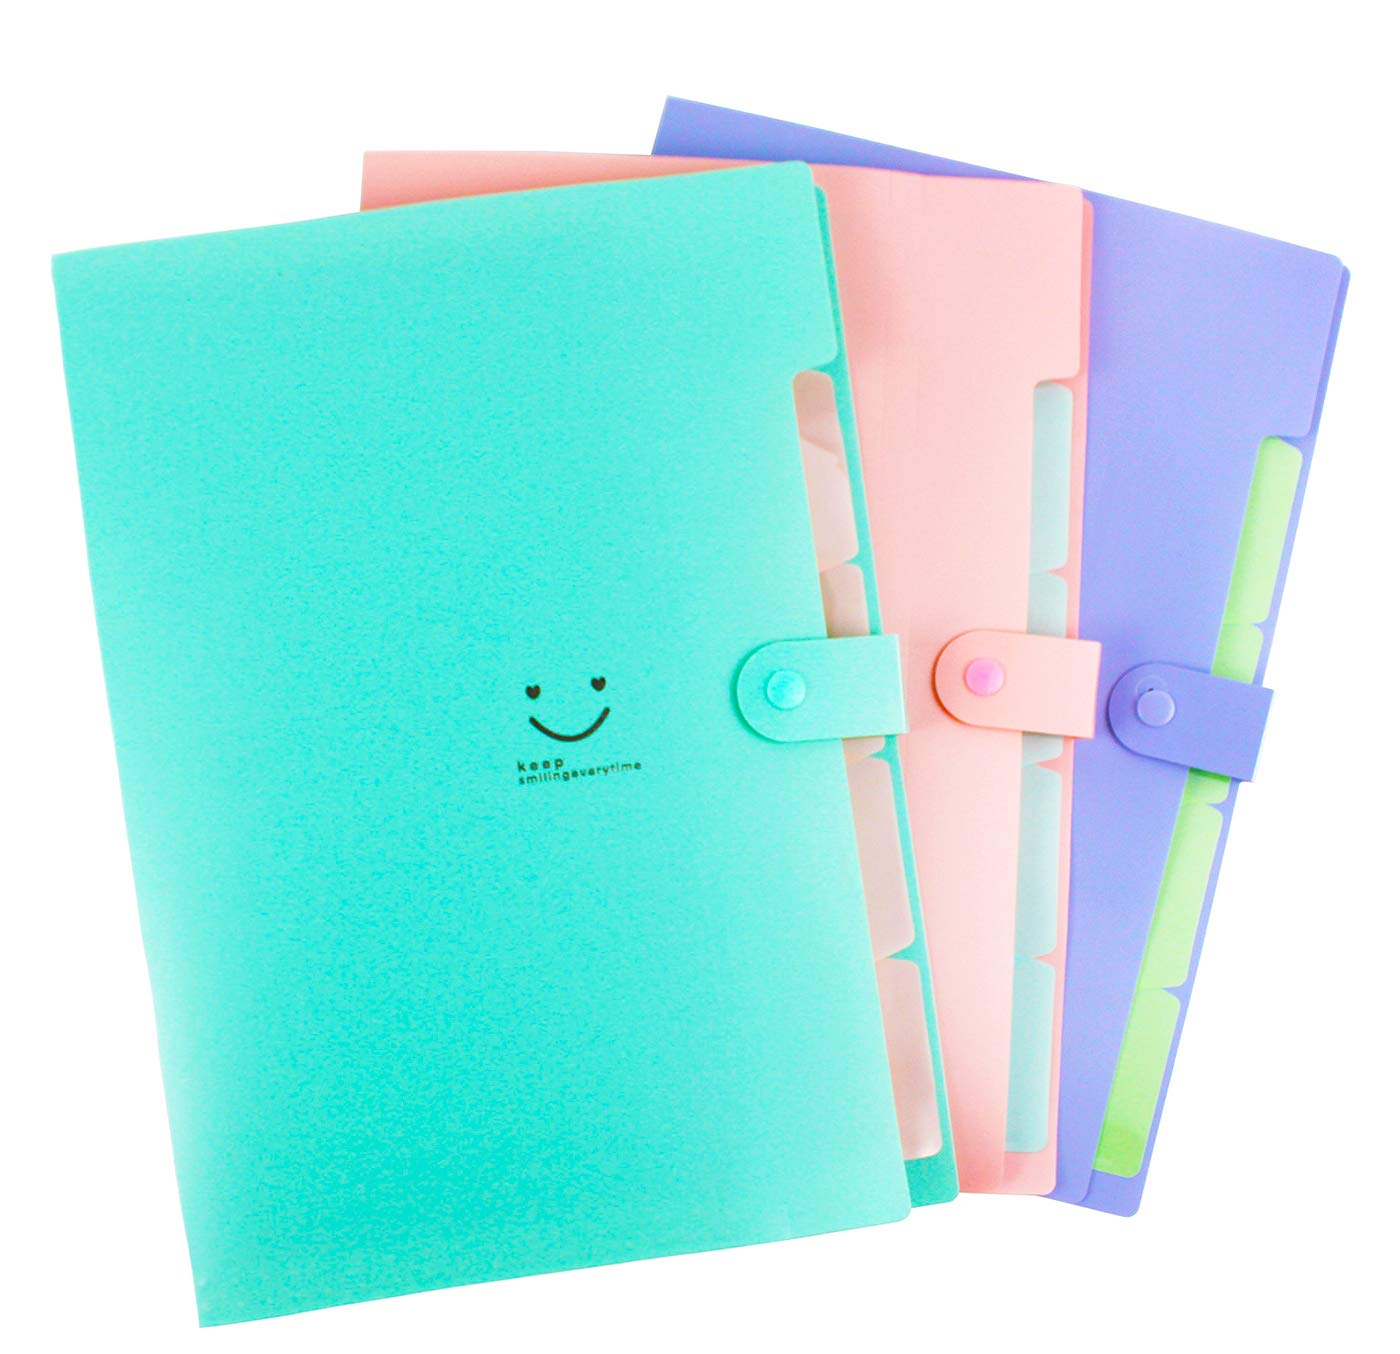 File Folders Expanding 5 Individual Pockets for Organizing and Storing Set of 3,File Letter Size with Snap Closure For School and Office Pink,Purple,Green